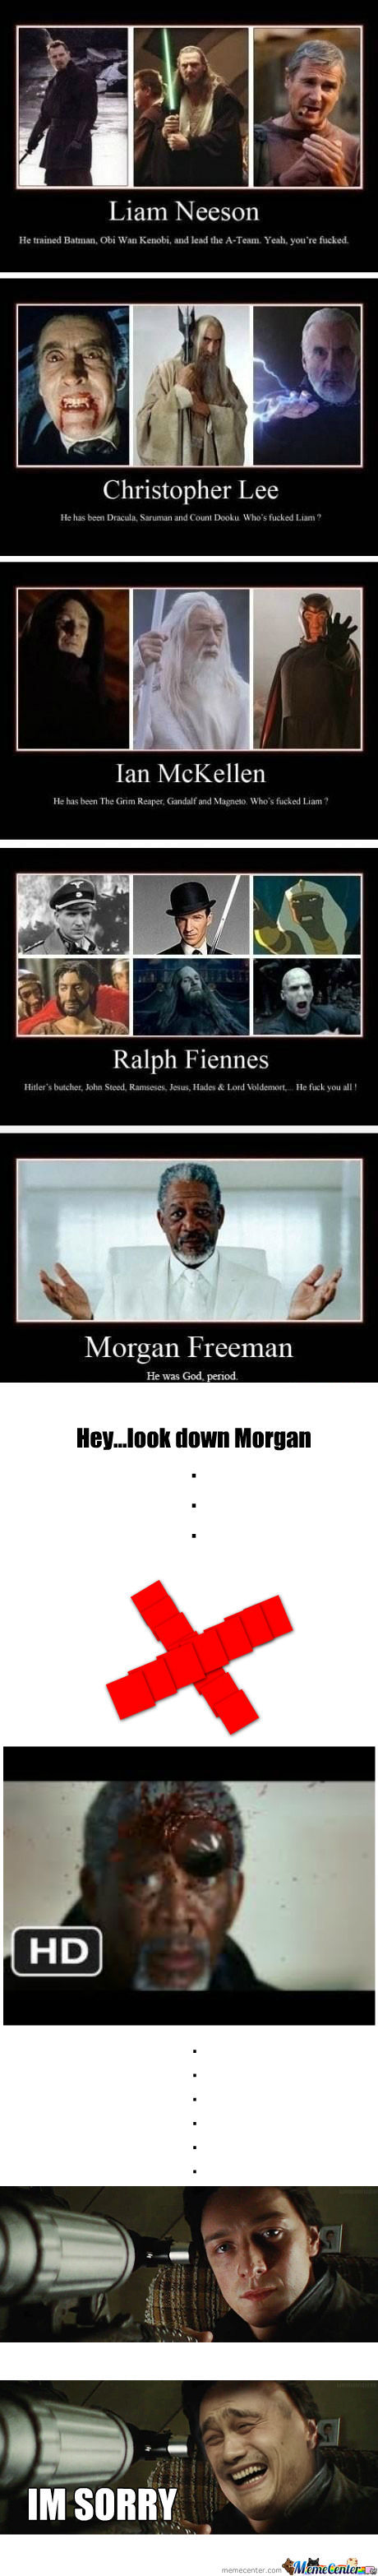 [RMX] Morgan Freeman